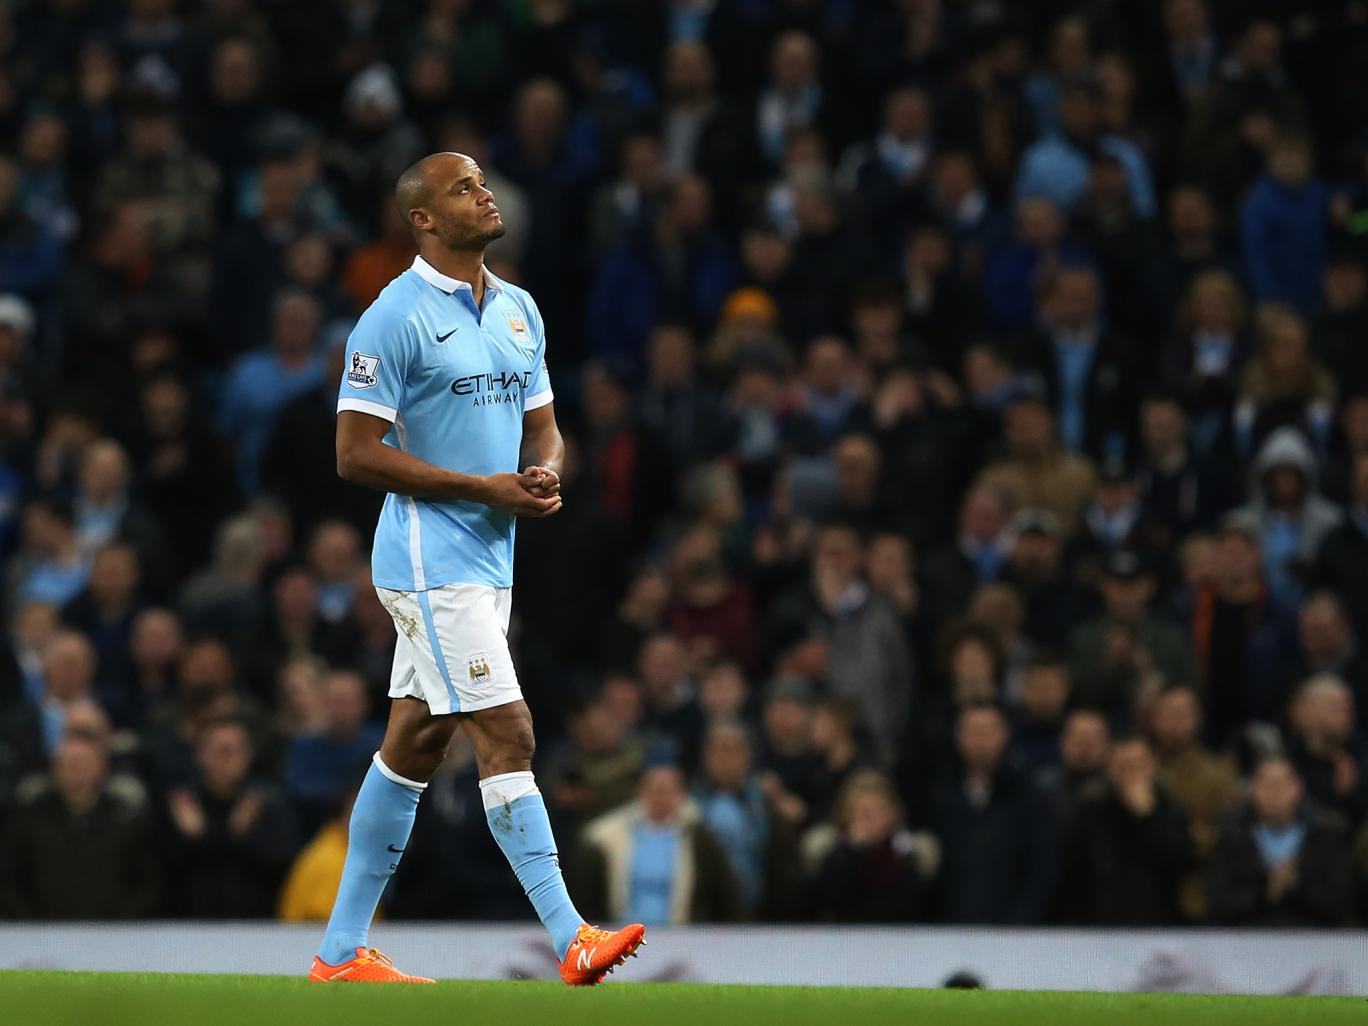 Good Kompany - City look bad at the back when Captain Vincent is sidelined by his calf injury.